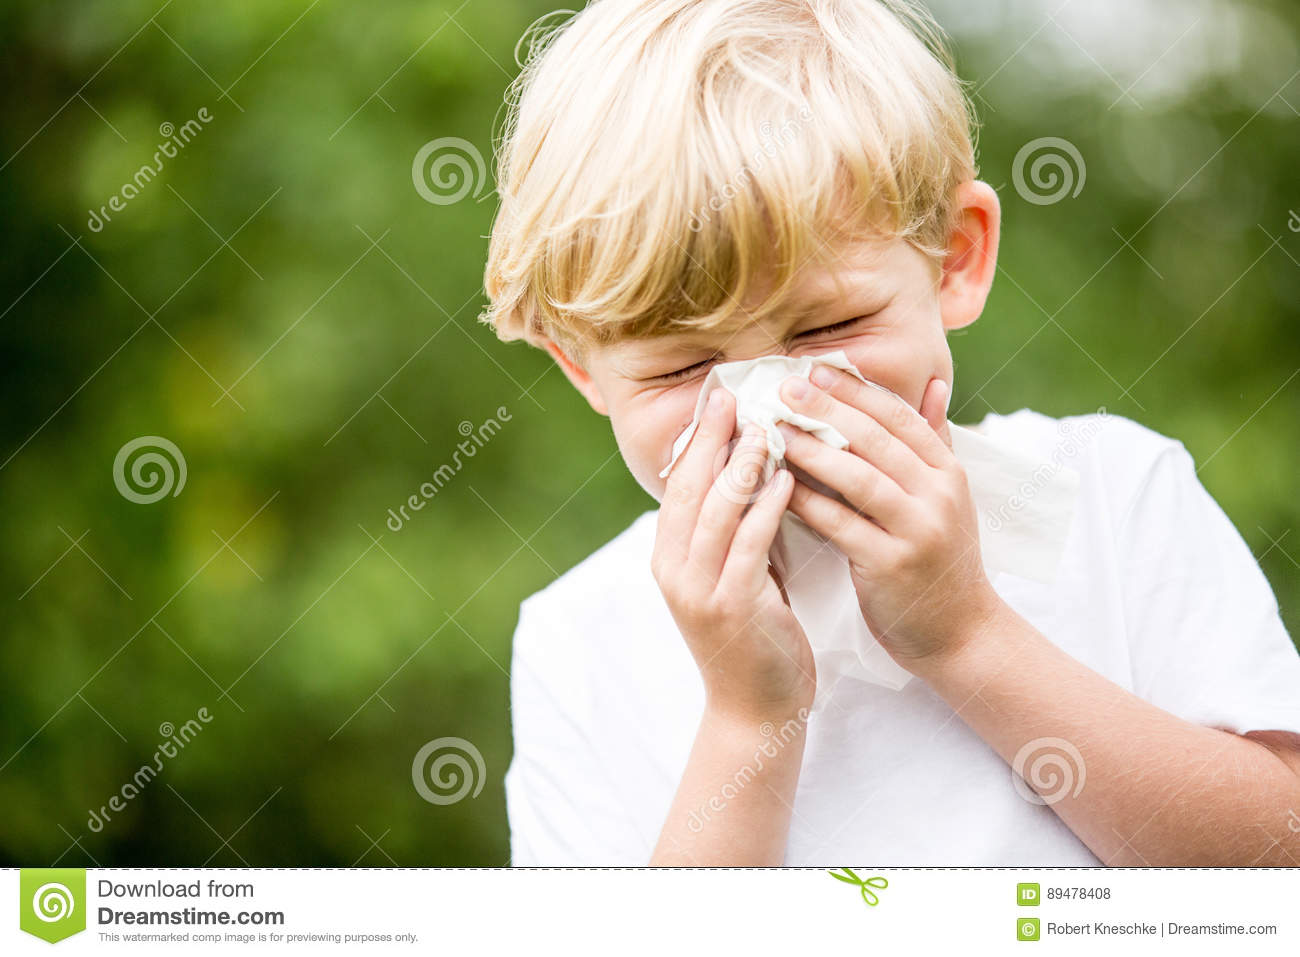 Child with a cold sneezing